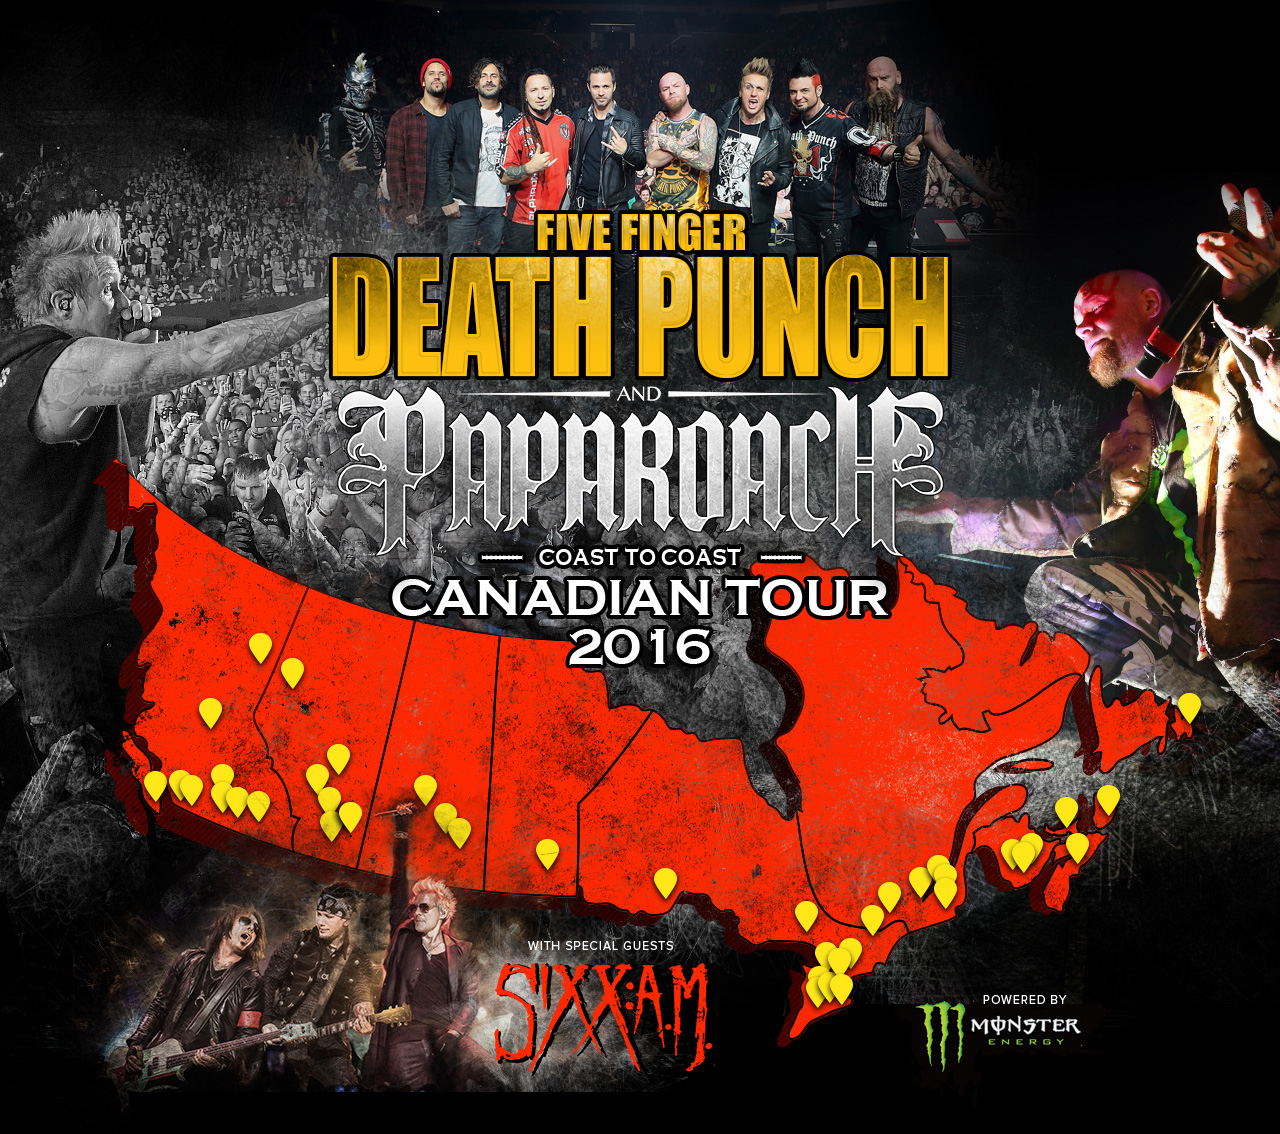 Vote To See Five Finger Death Punch And Papa Roach In Your City